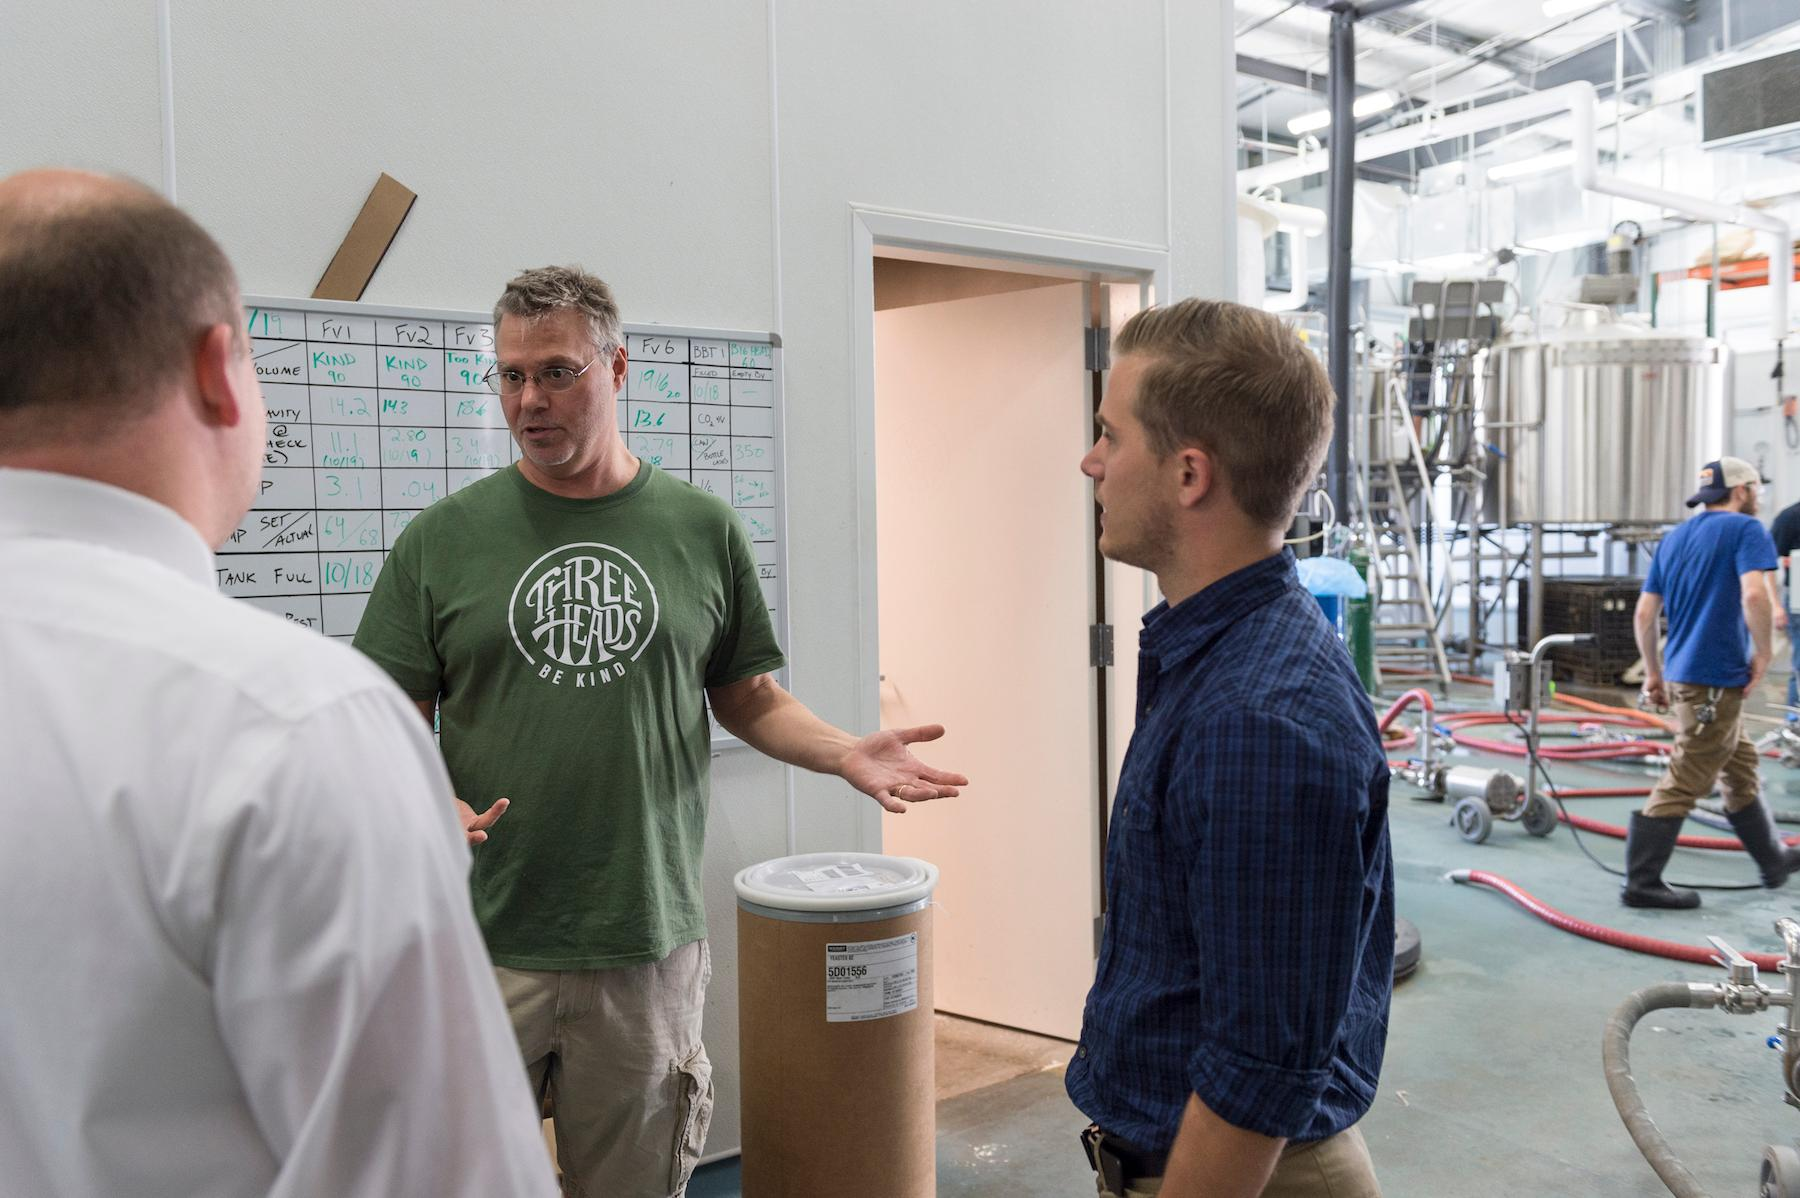 Three Heads Brewing President Dan Nothnagle, center, talks with Todd Raethka, left, operations manager of RIT Catering, and Eric Fox, supervisor for RIT Catering. Credit: Elizabeth Lamark